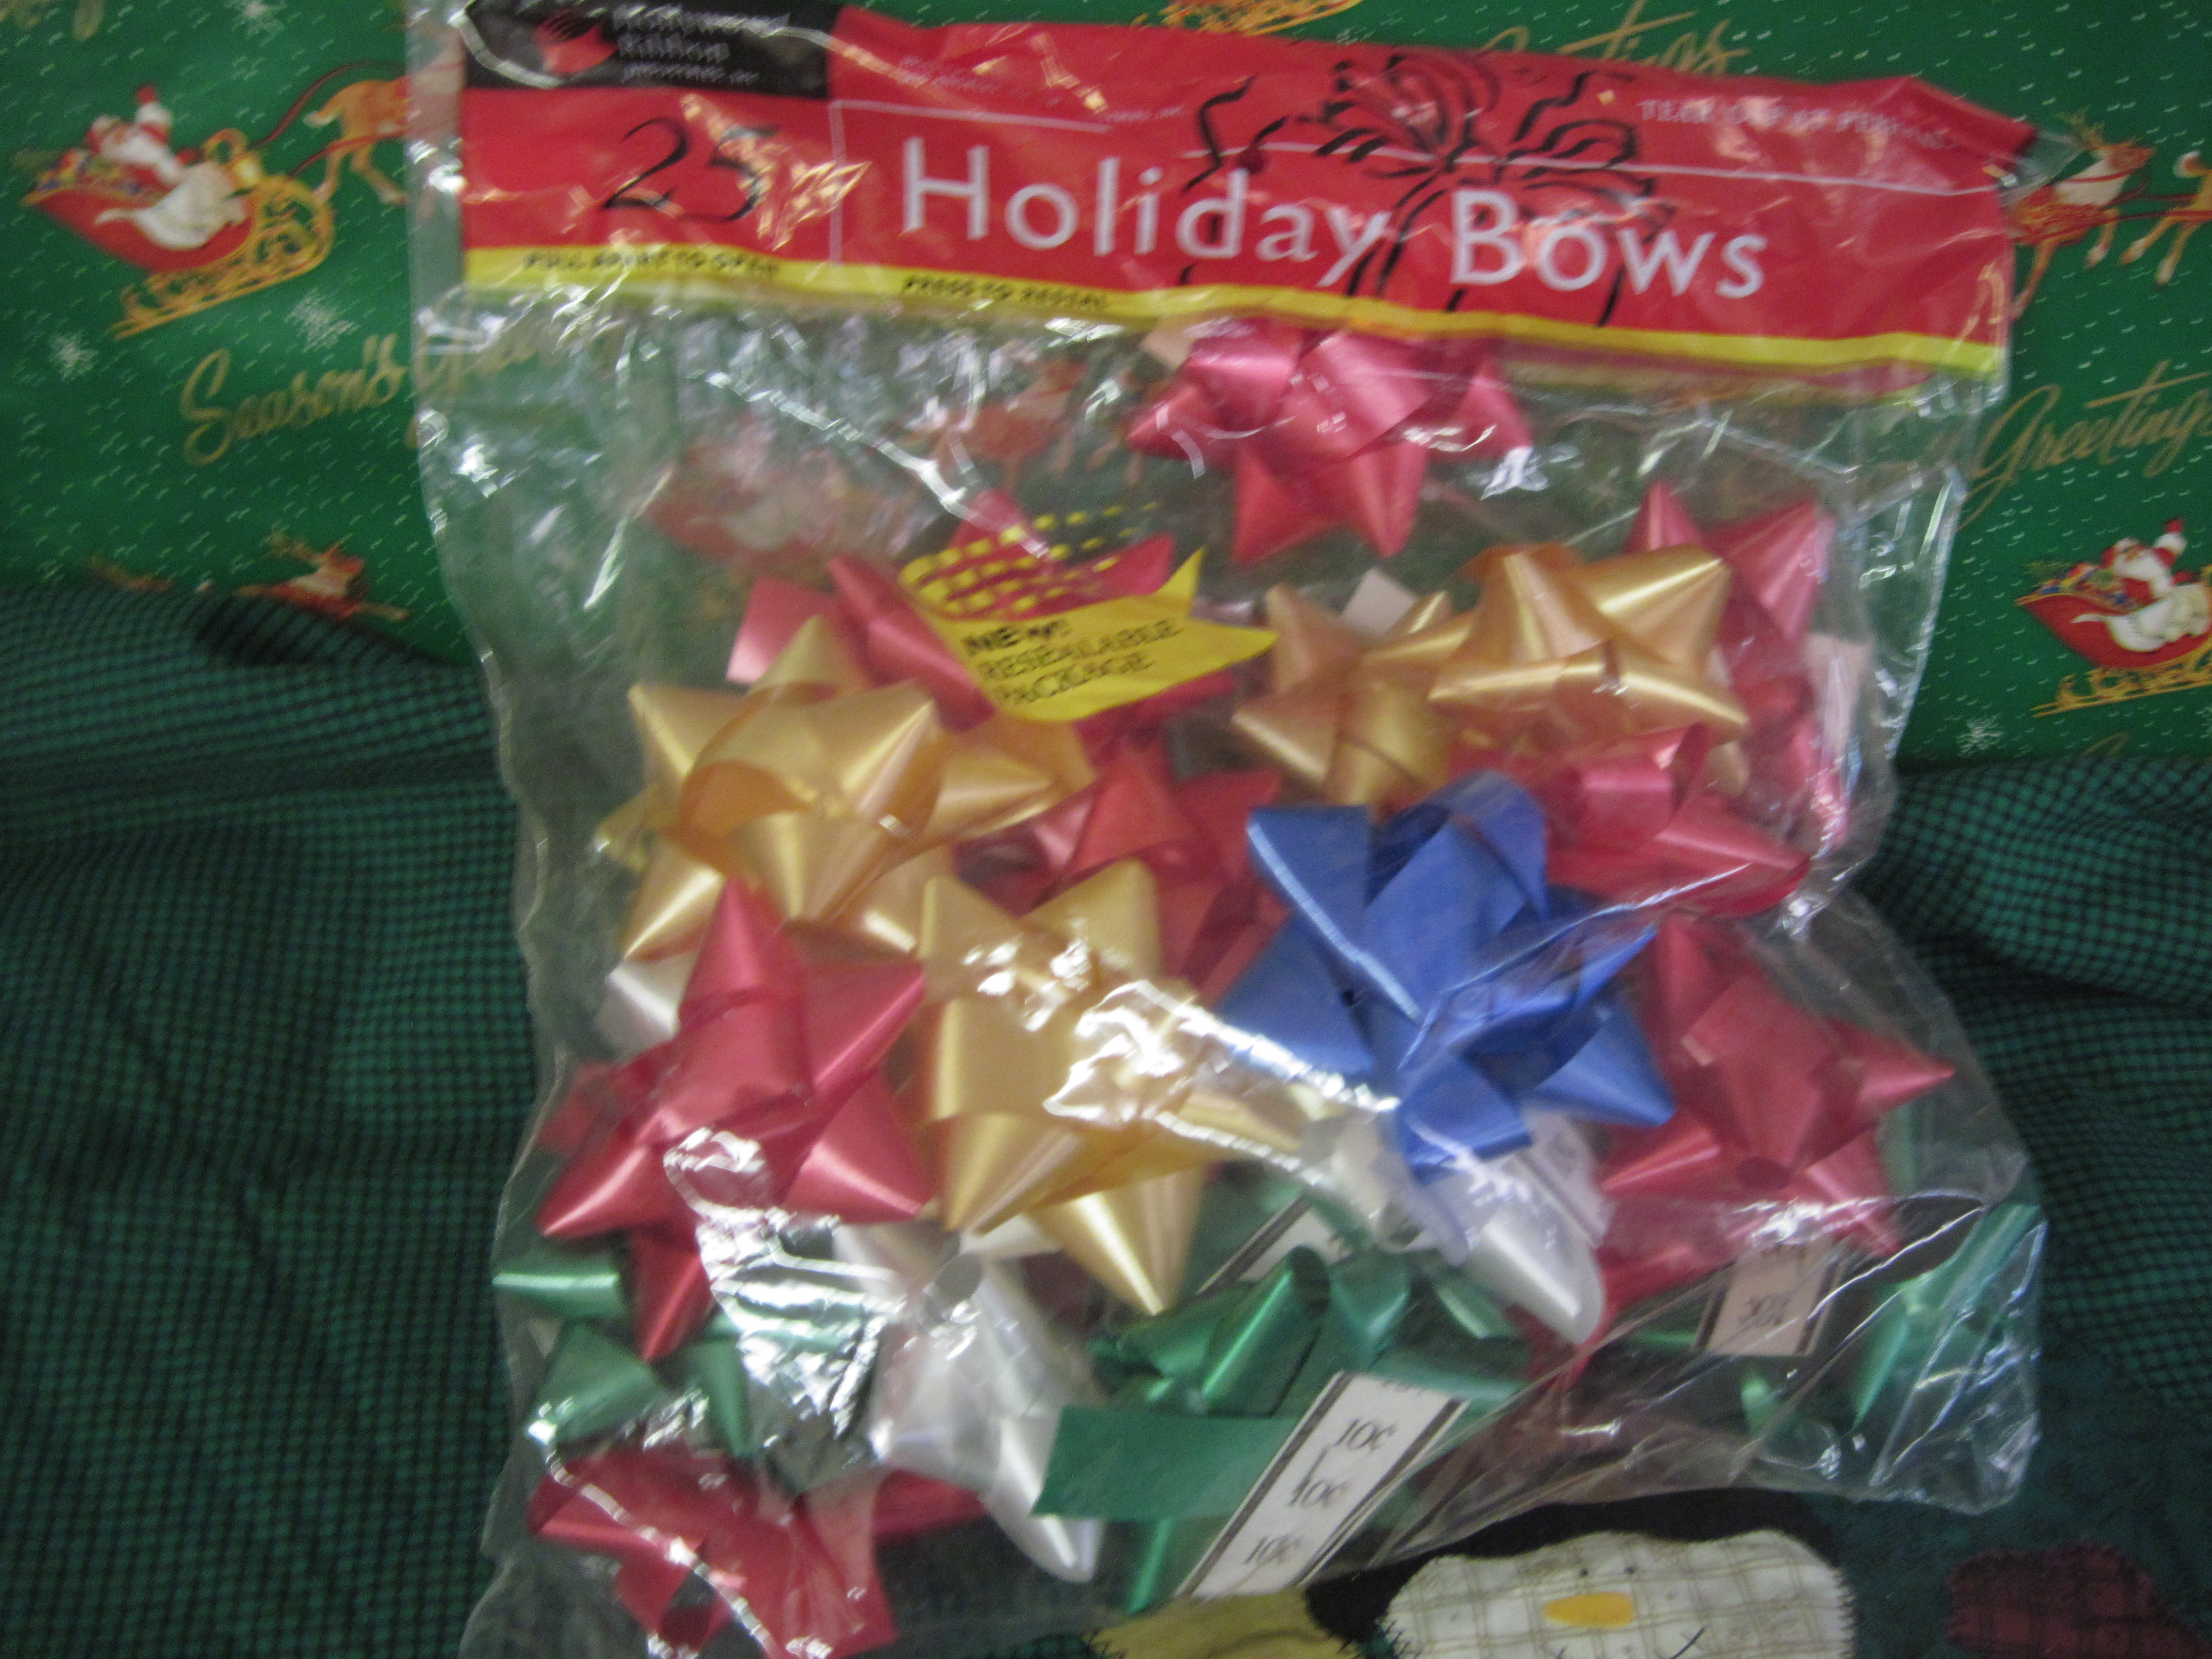 Bag of 25 Holiday Bows - Multi-Colored